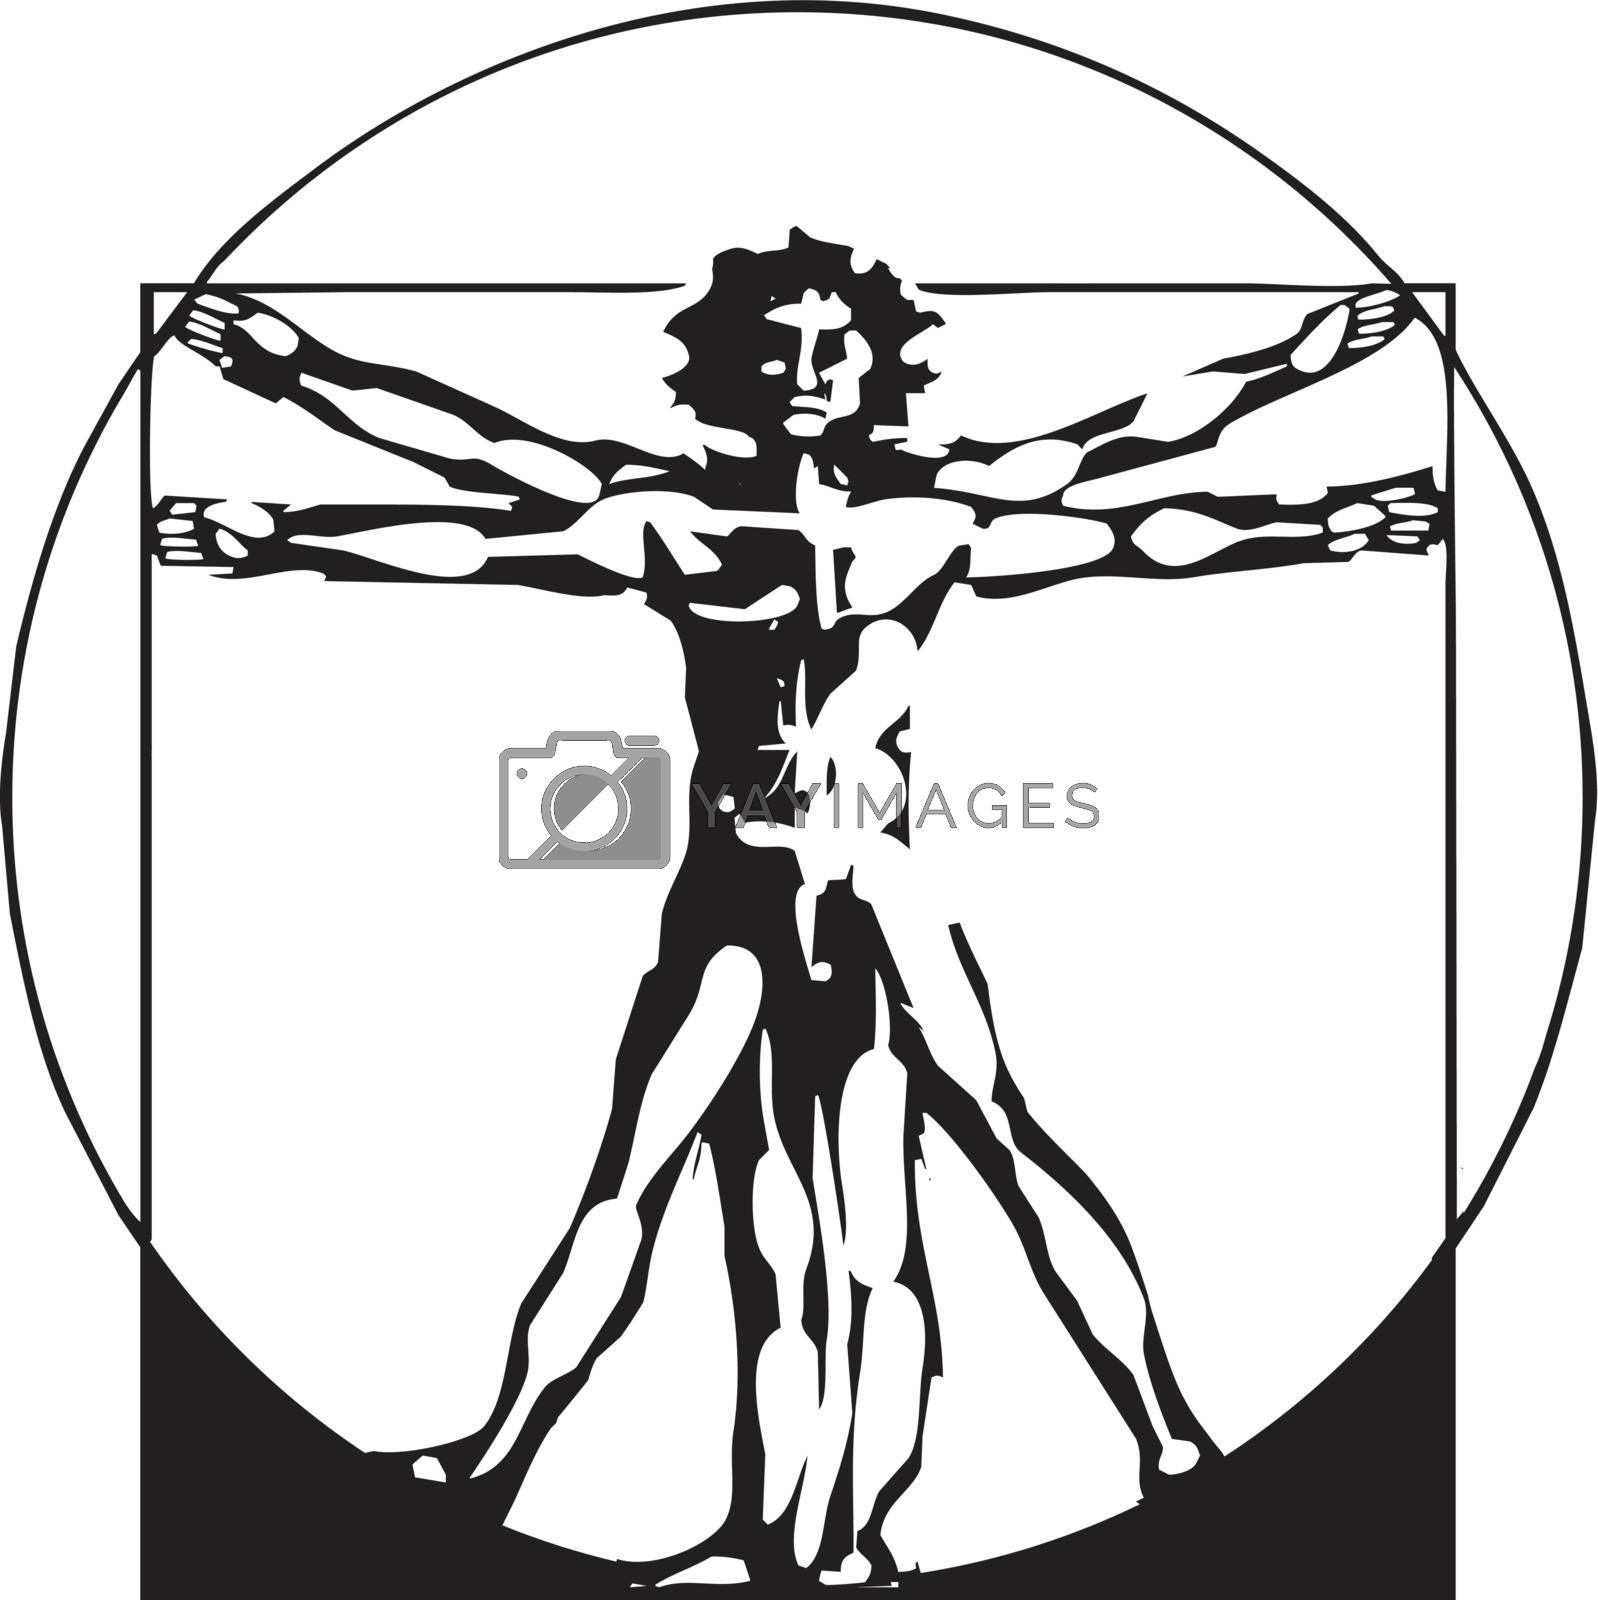 woodcut style depiction based on Leonardo Da Vinci's Proportions of Man